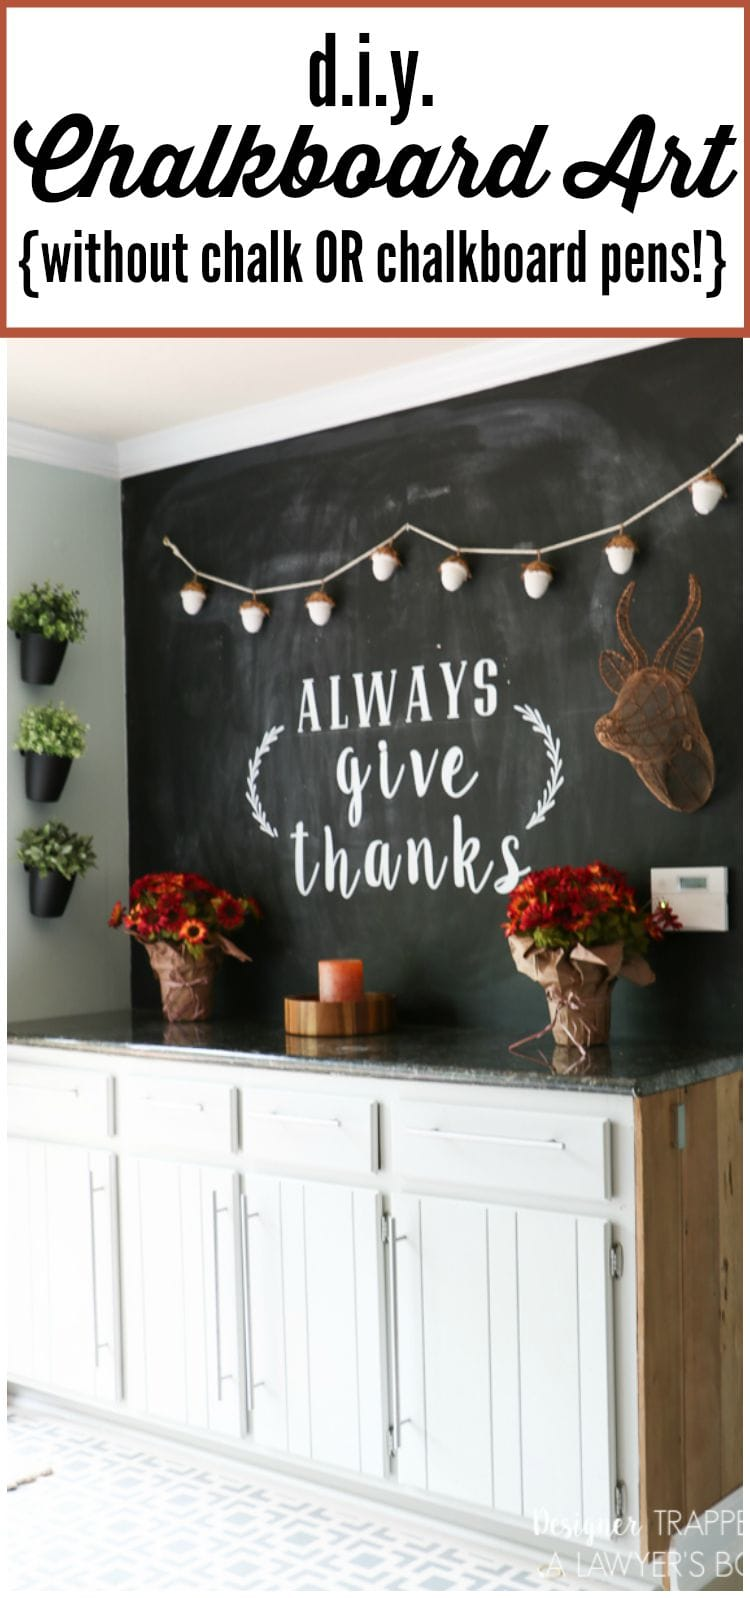 Fall Chalkboard Art And Decor Designer Trapped In A